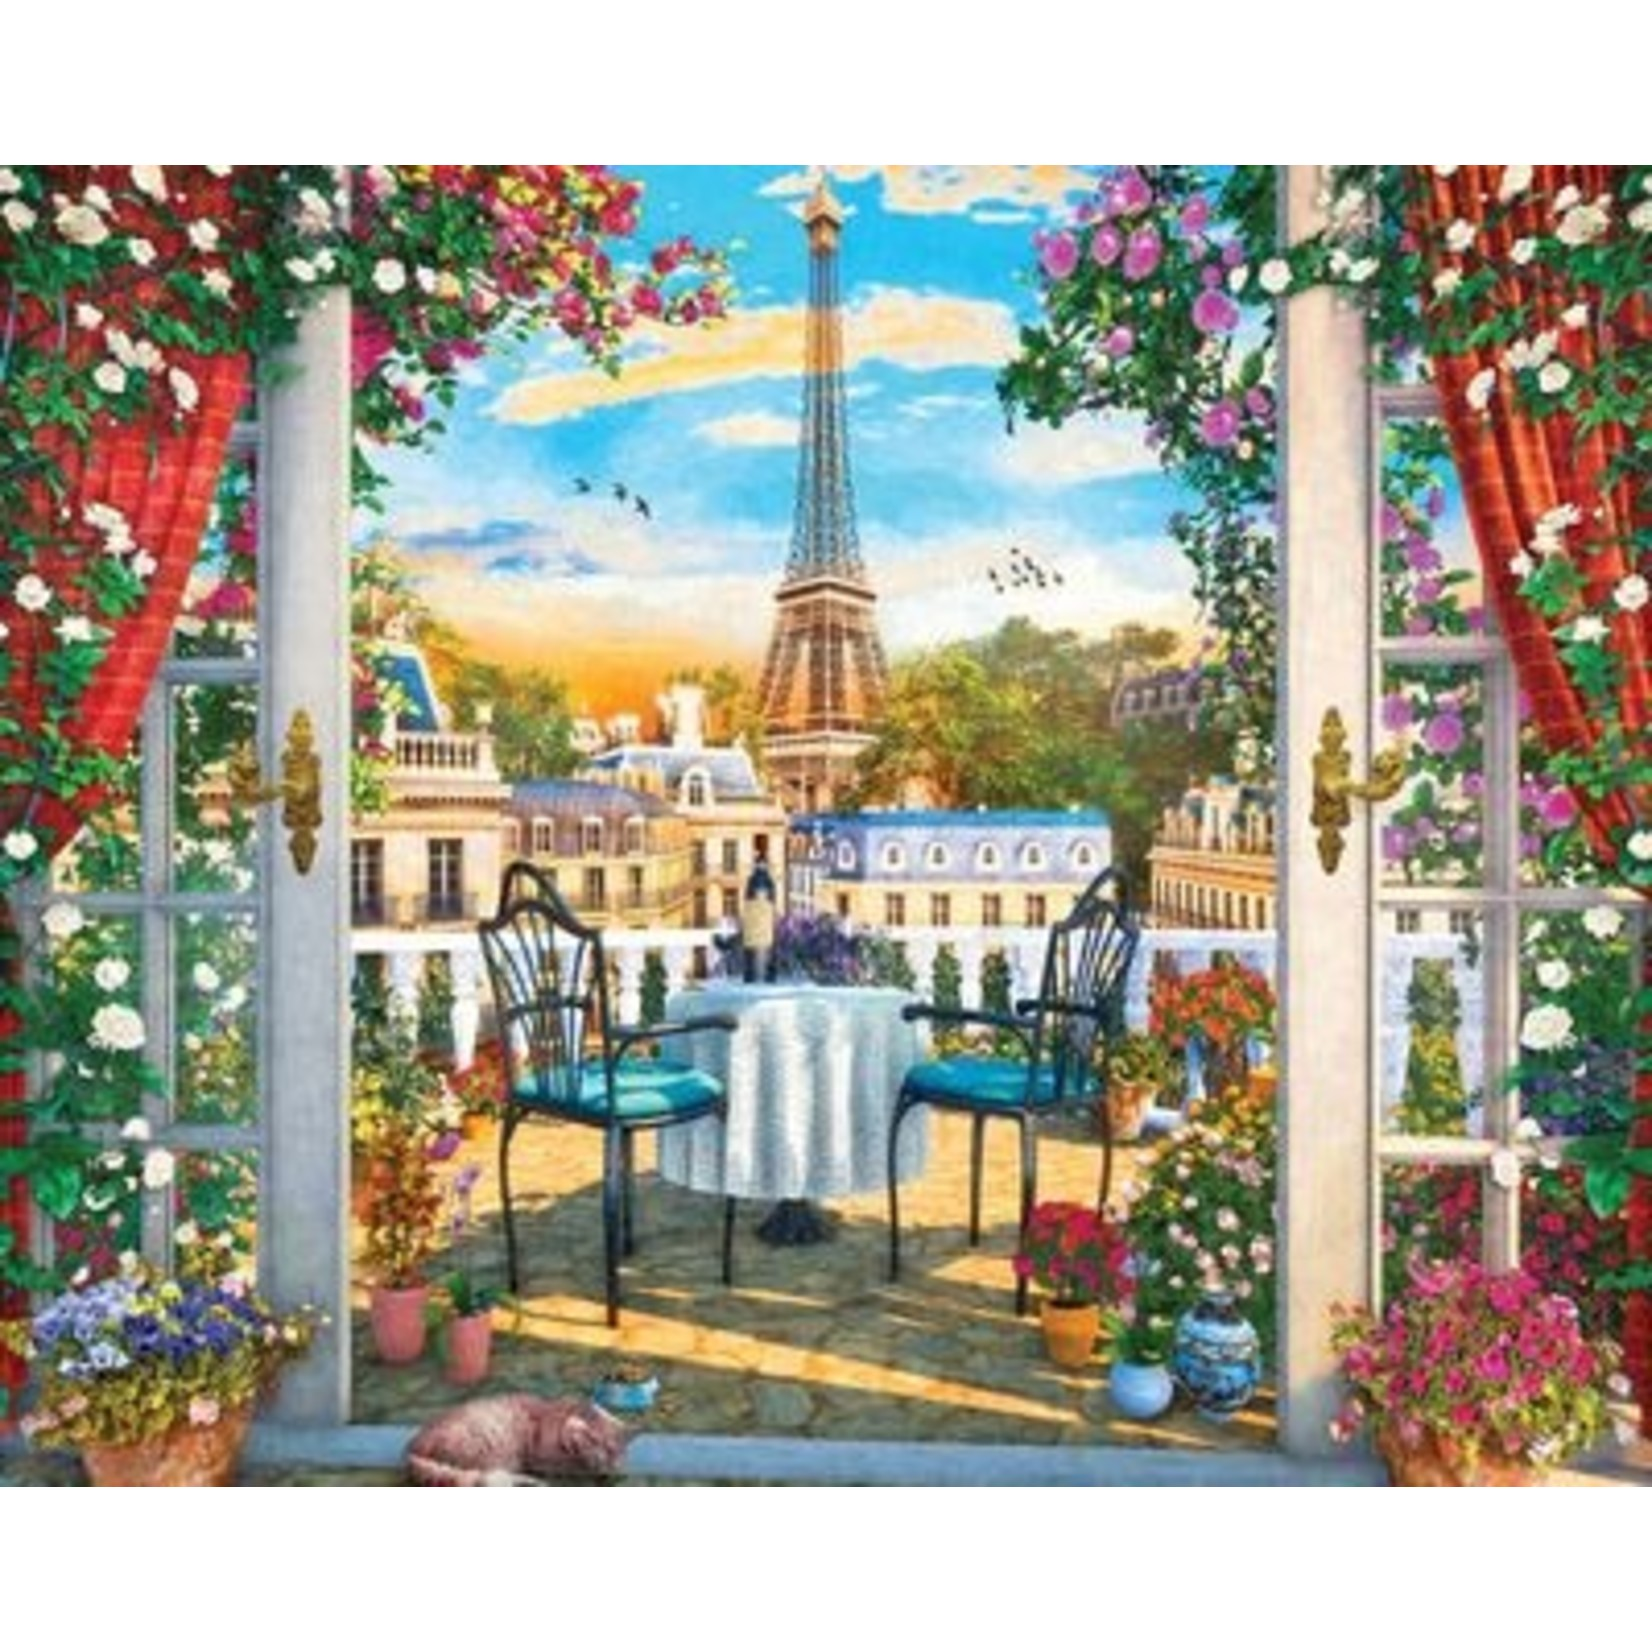 LUXURIOUS LOOKOUT 1000 PIECE JIGSAW PUZZLE